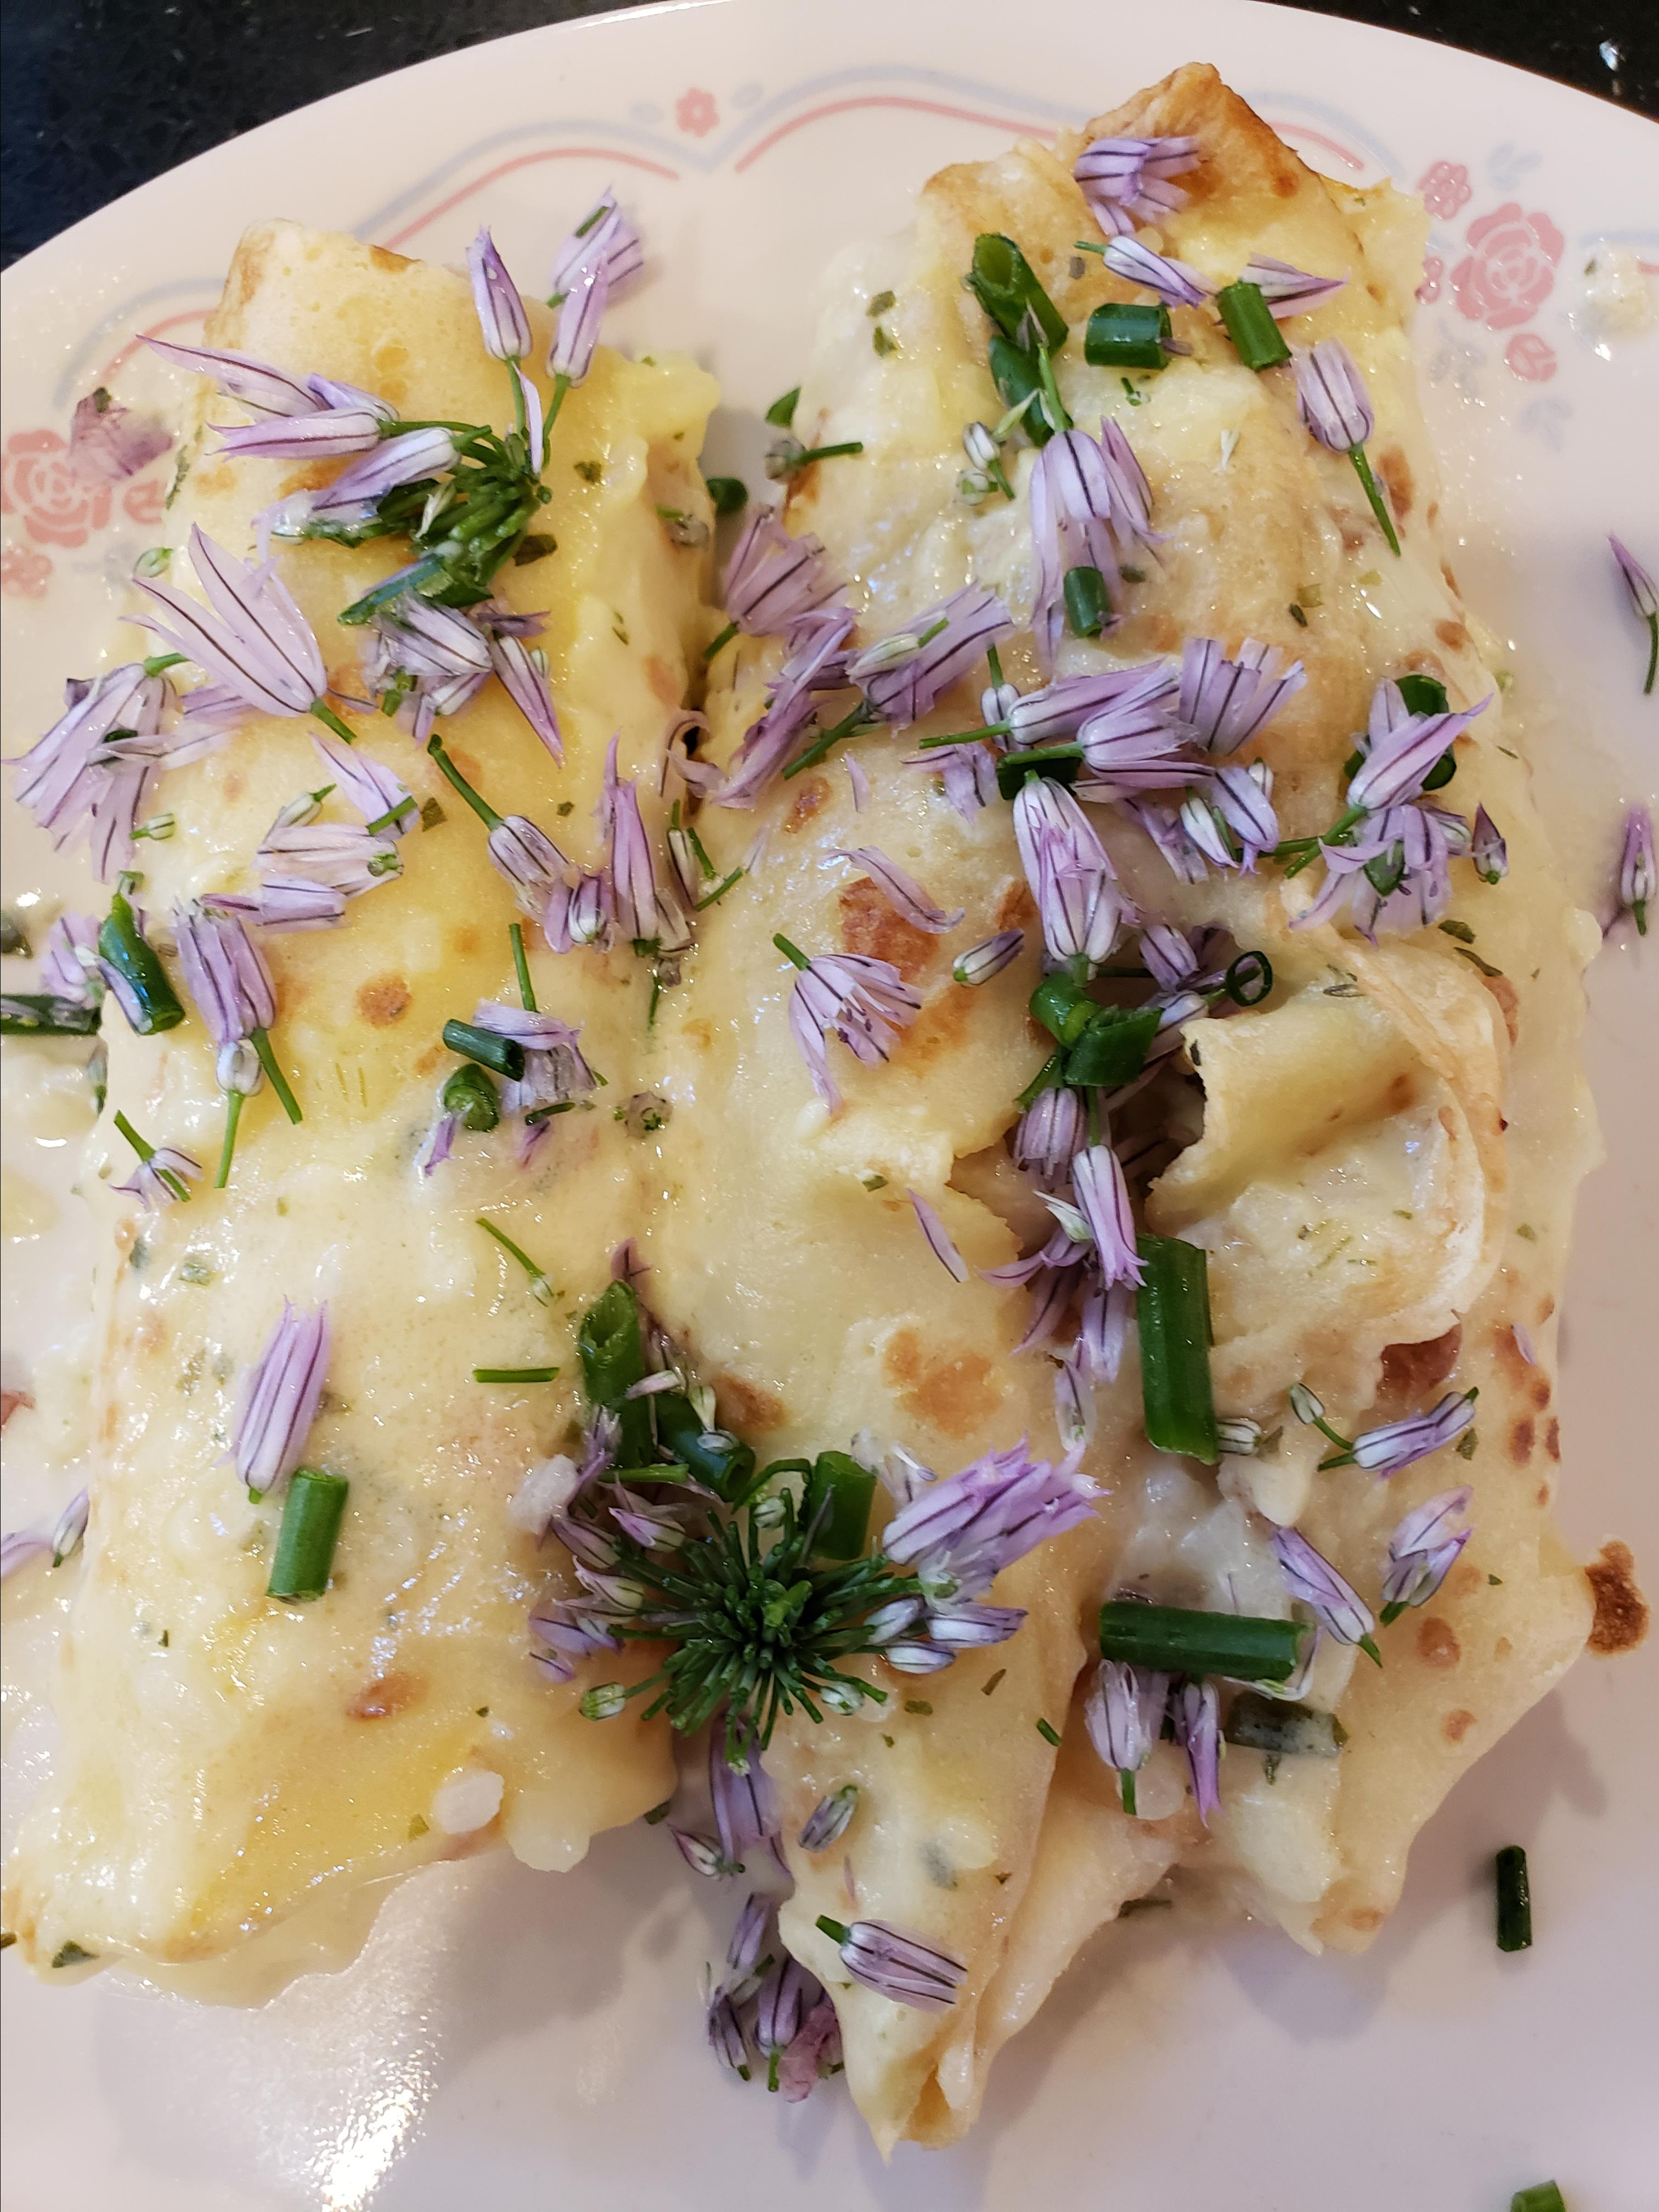 Chicken or Turkey Crepes with Tarragon TPSwift